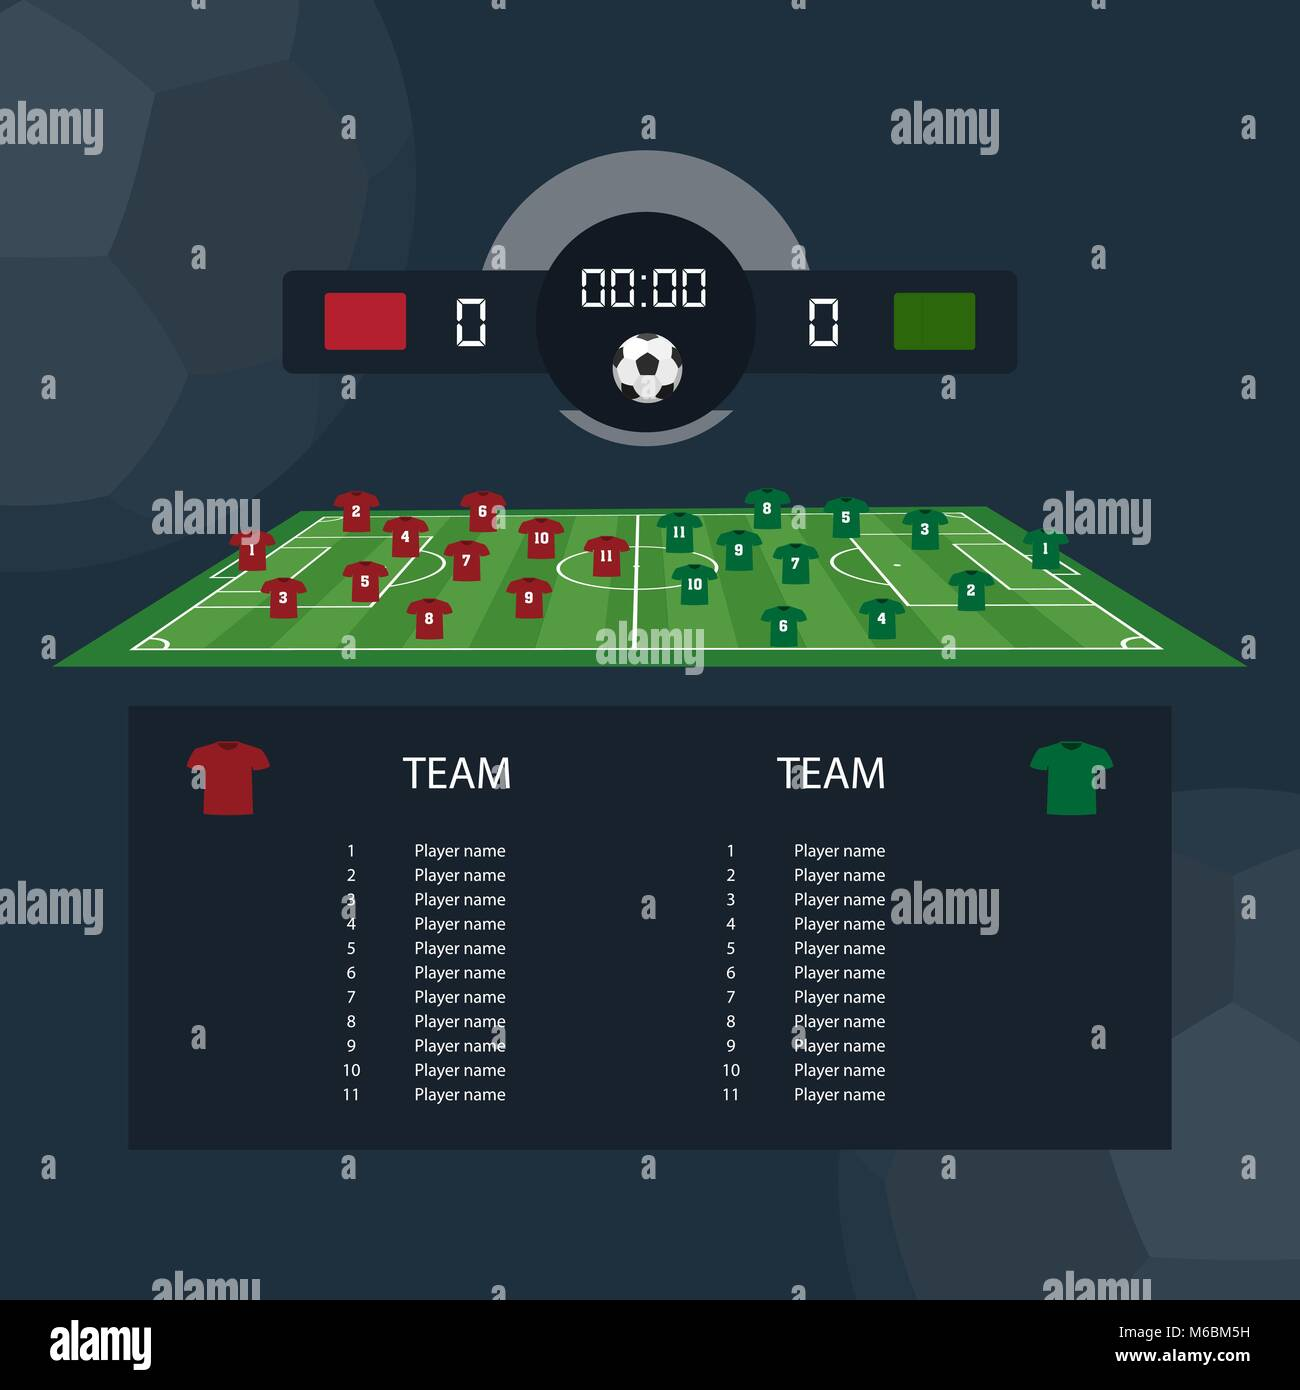 Soccer match scoreboard flat design between two example teams. Vector illustration - Stock Image